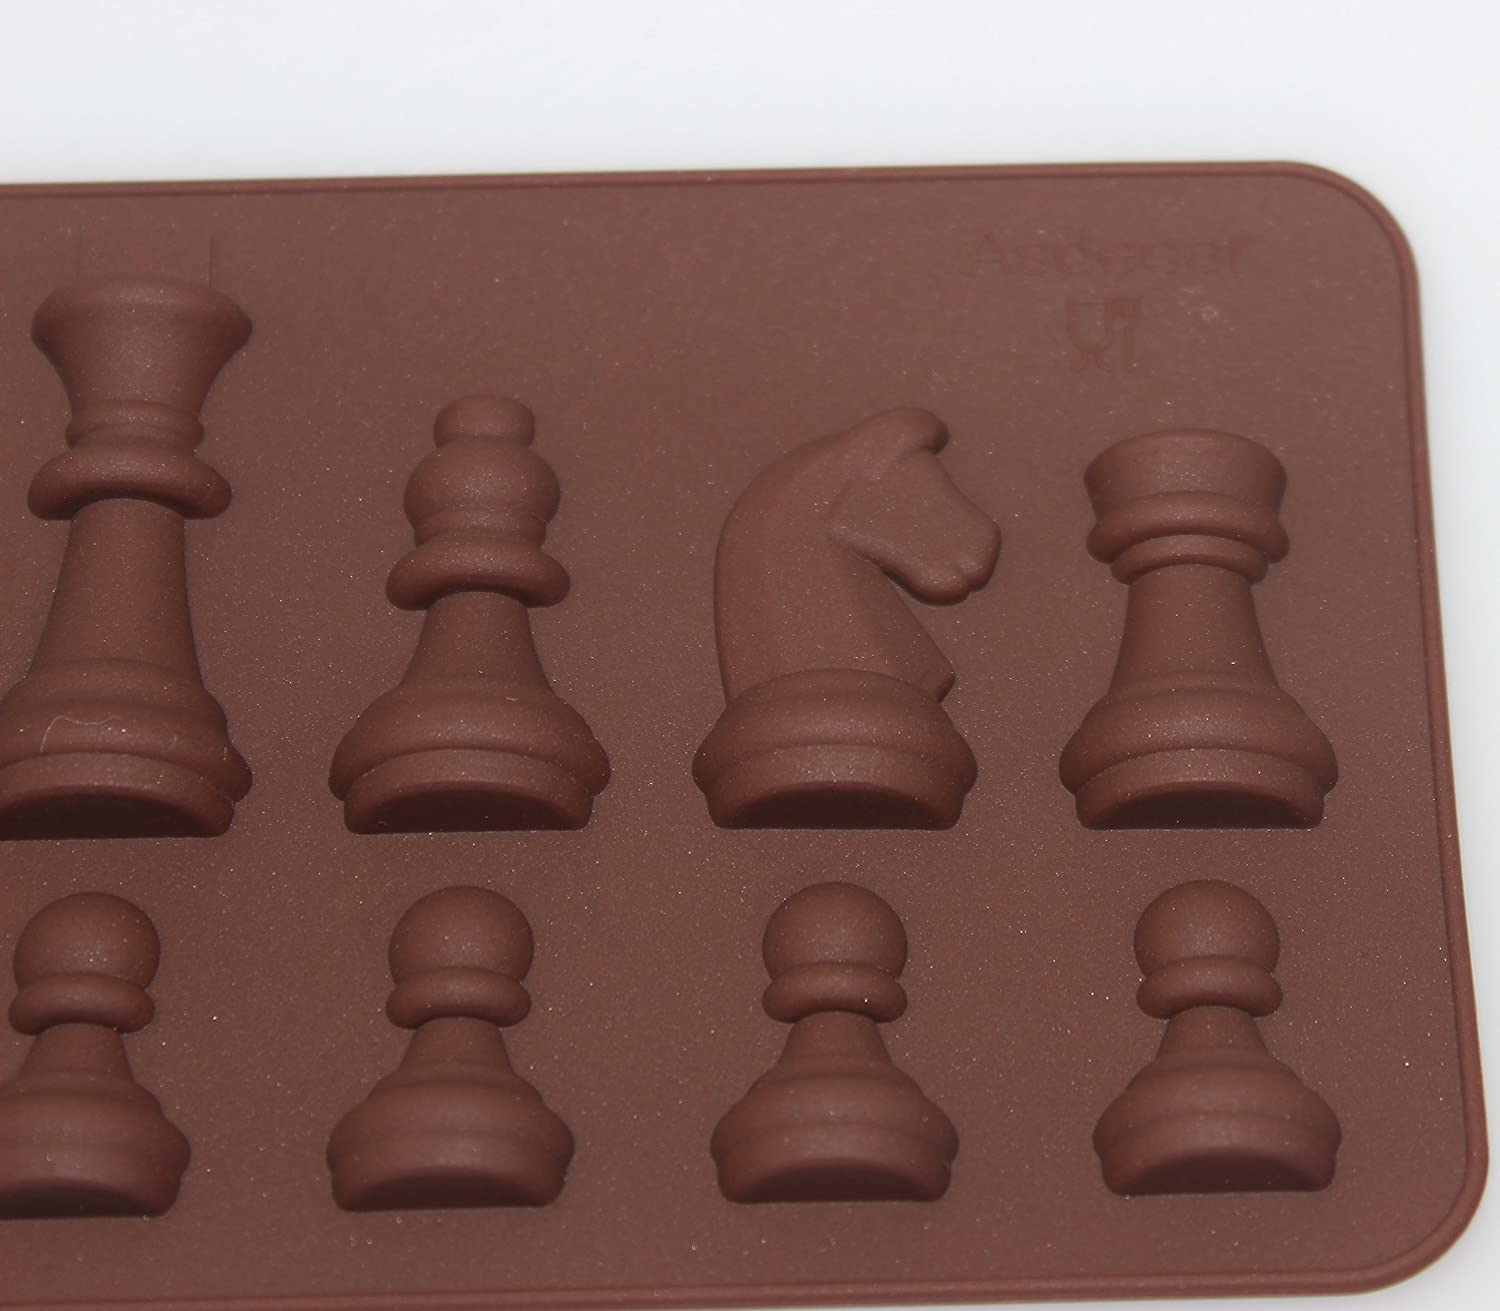 Amazon.com: Tifan Silicone Chess Pieces Chocolate Candy Mold with ...